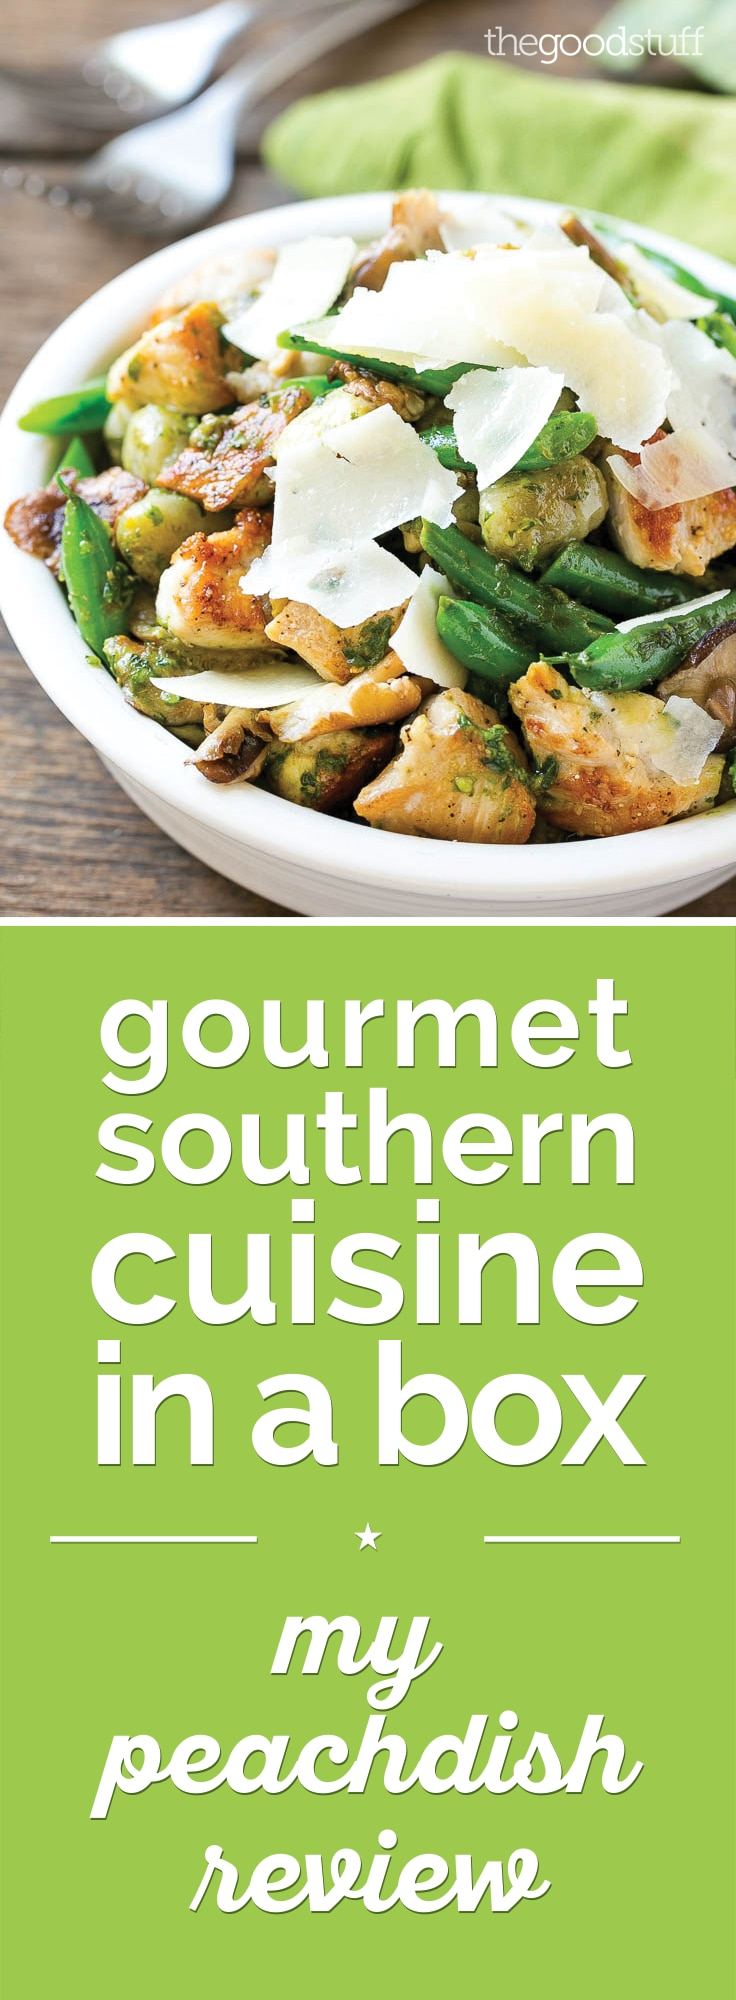 Gourmet Southern Cuisine in a Box — My PeachDish Review | thegoodstuff